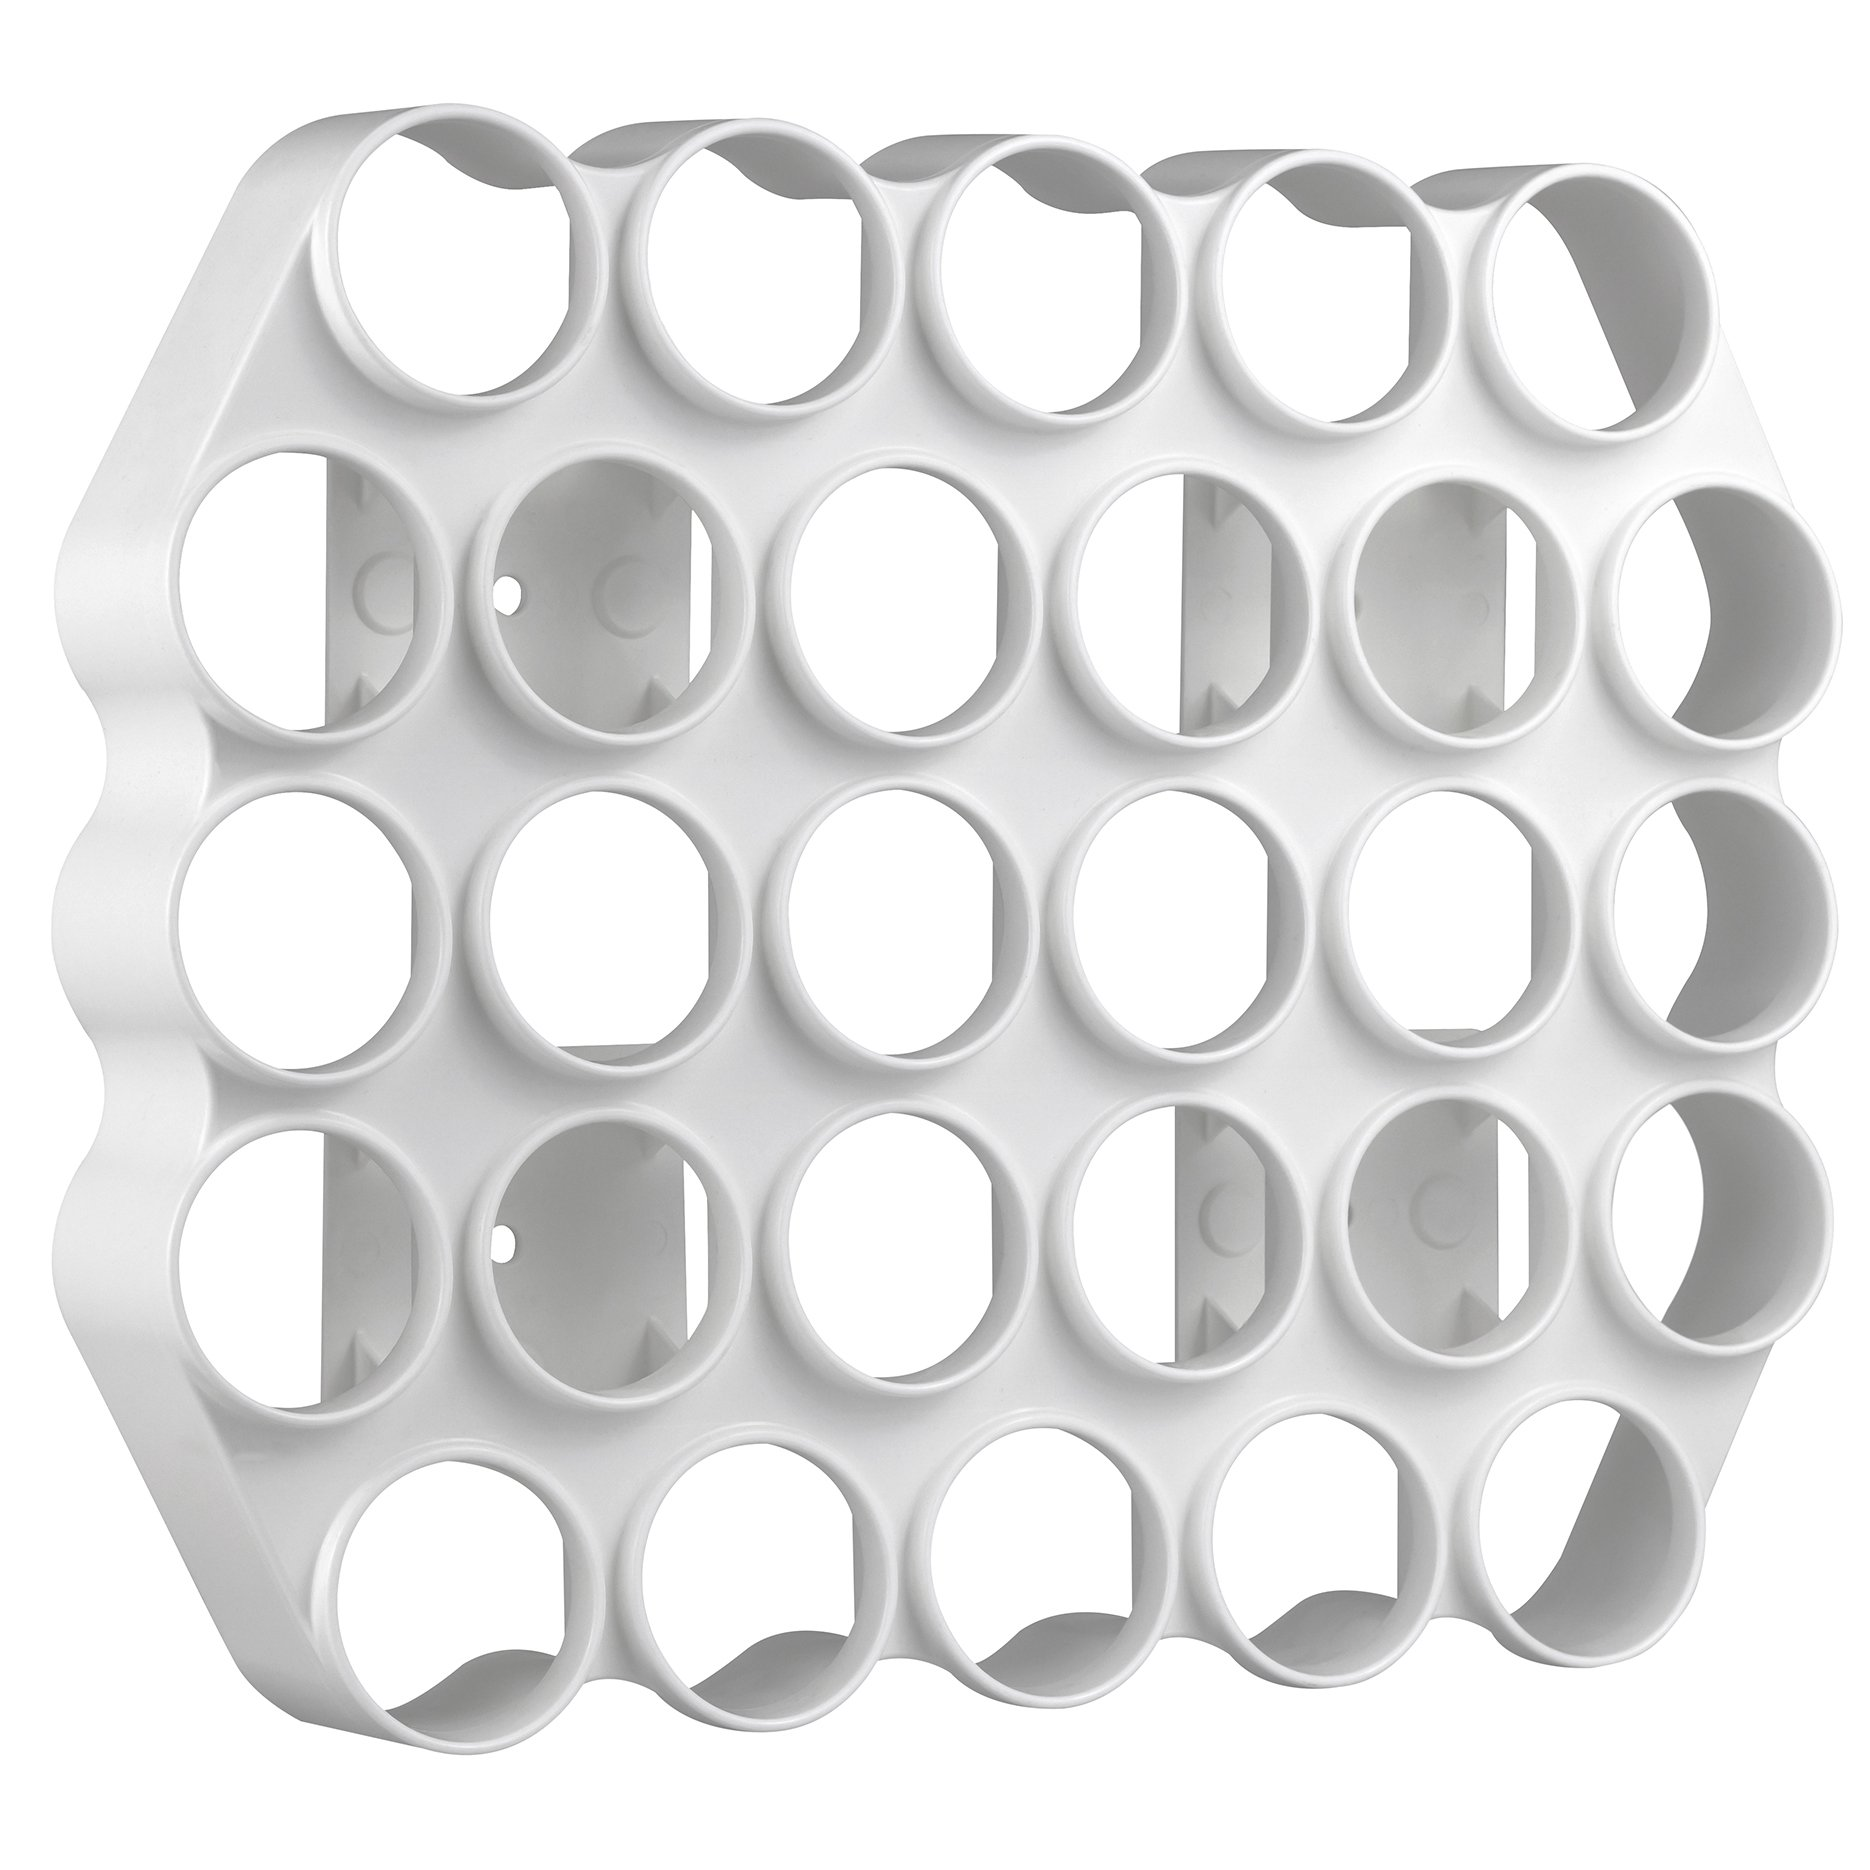 BeraTek Industries Storage Theory | Peel and Stick Cafe Wall Caddy | 28 Capacity Single Serve Coffee or Tea Pod Wall Display | White Color